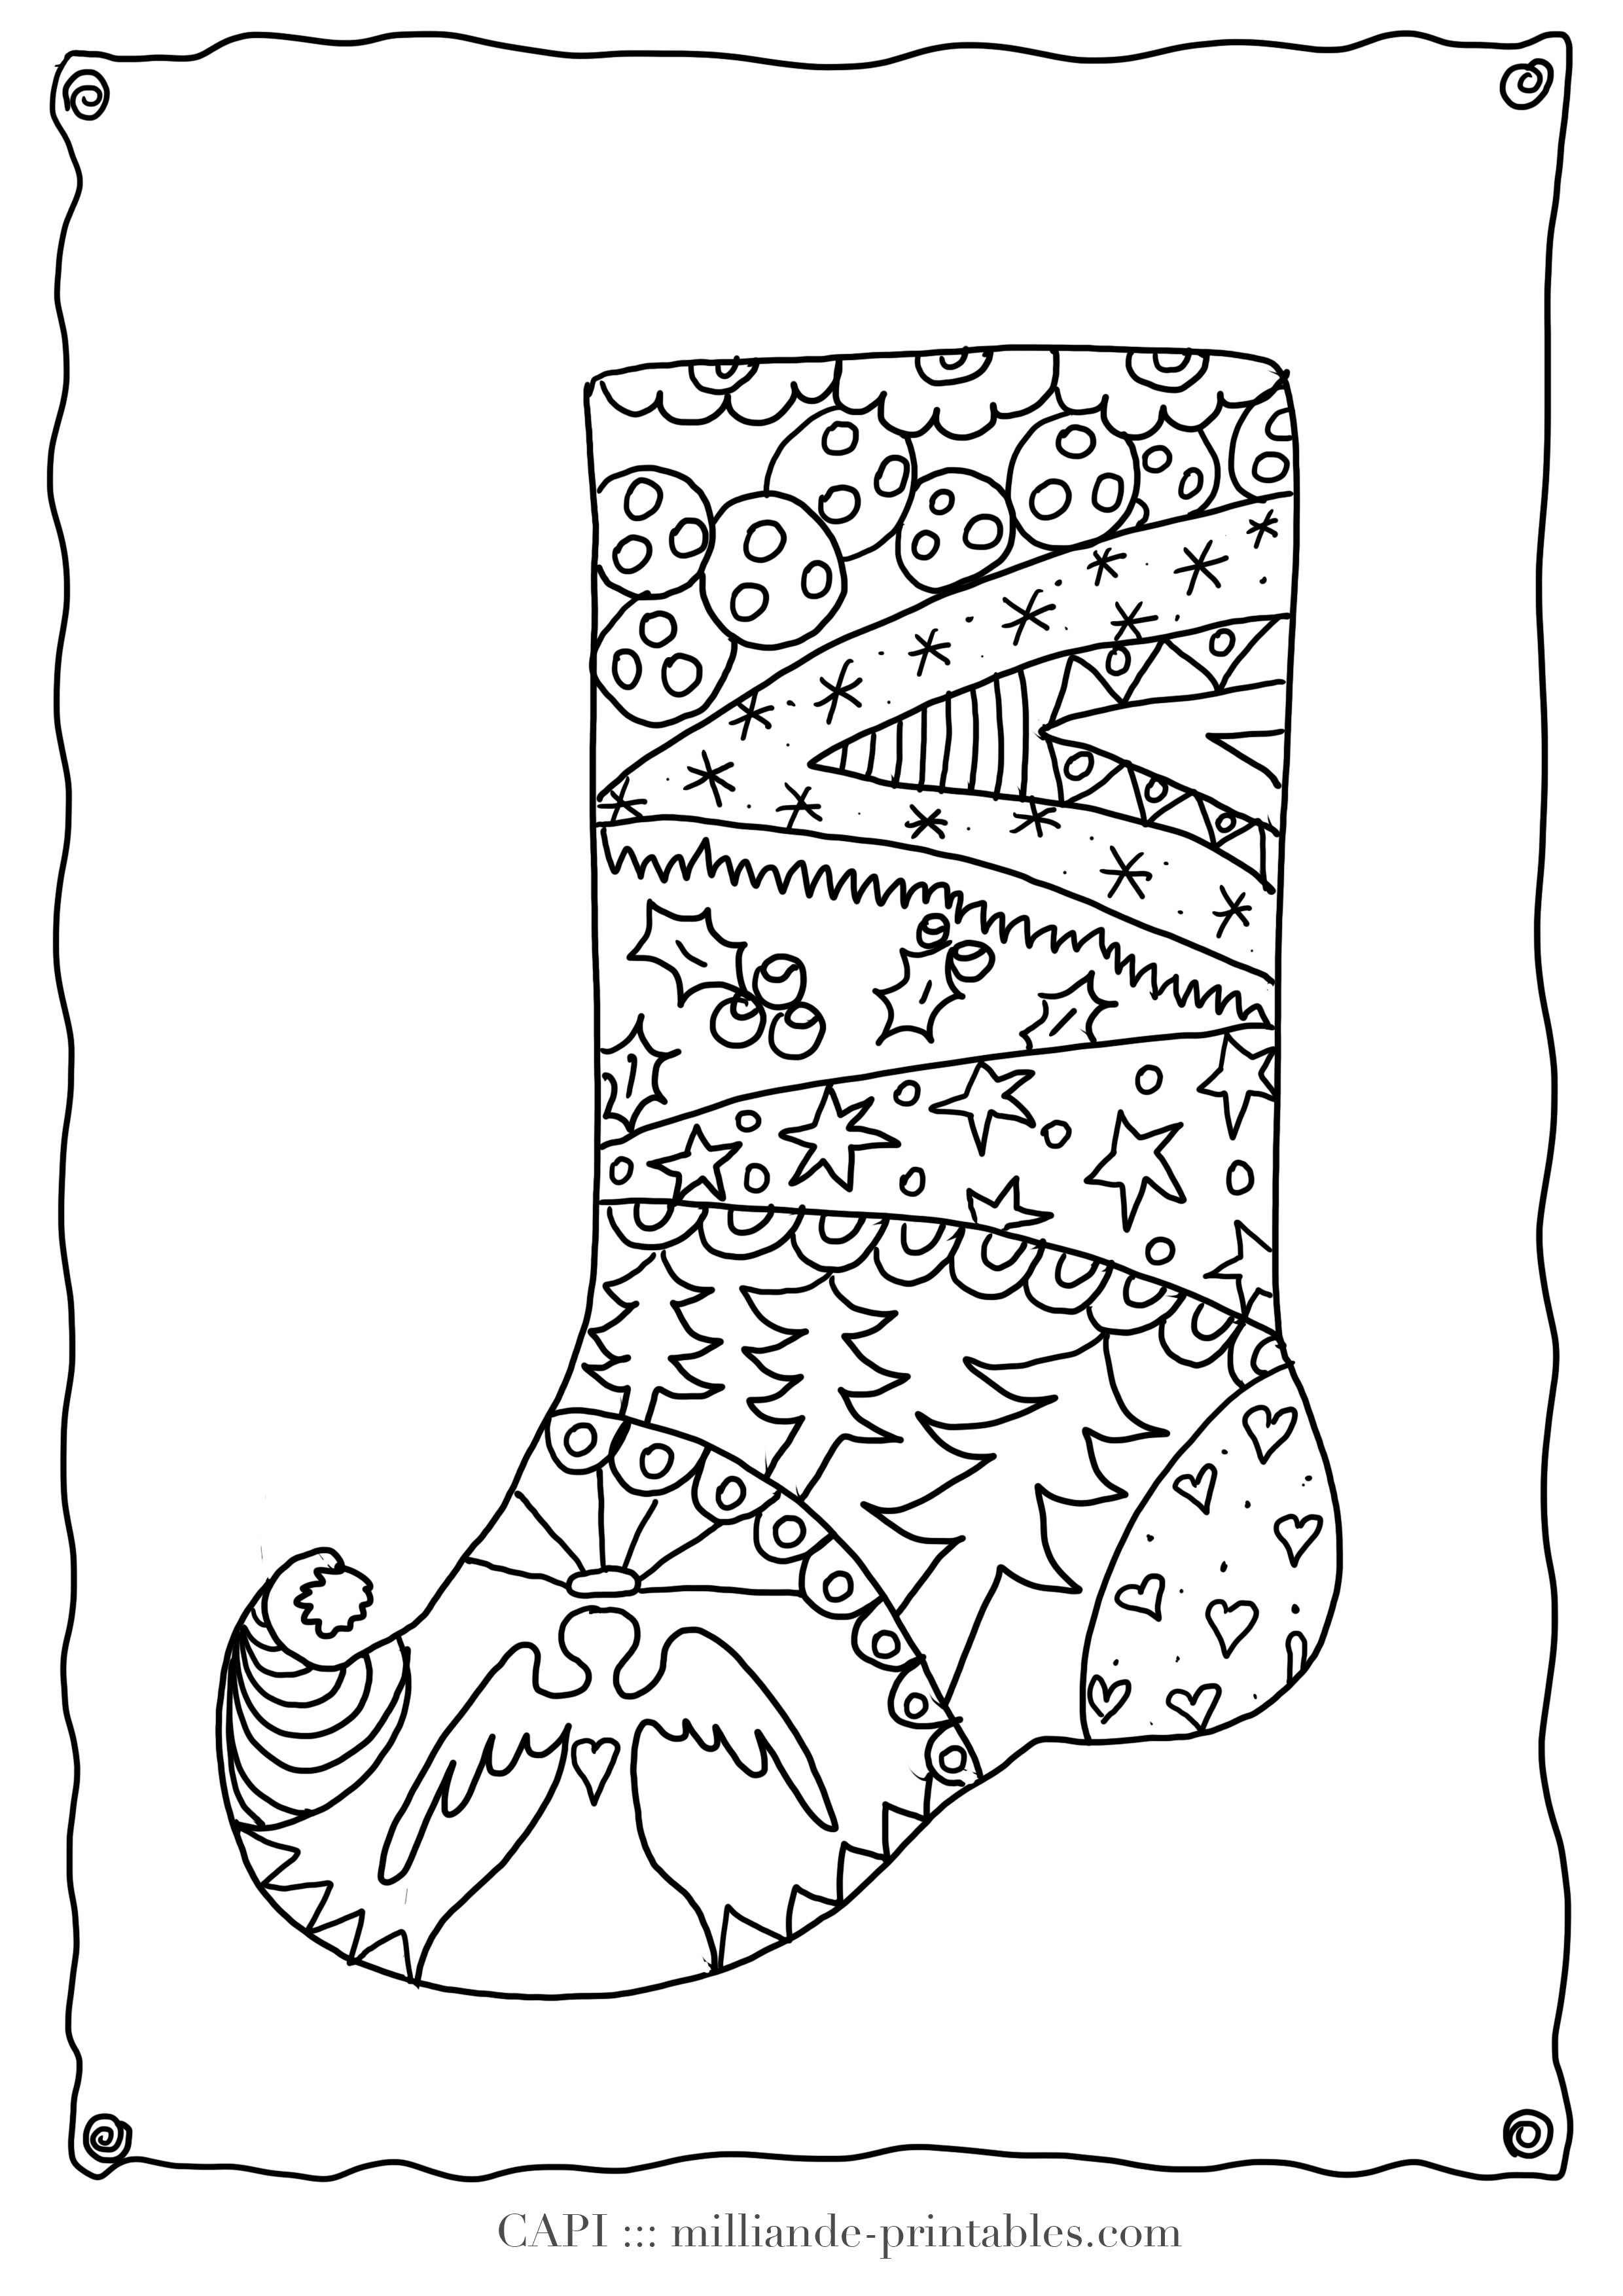 Christmas Stocking Coloring Pages For Adults With Free Books